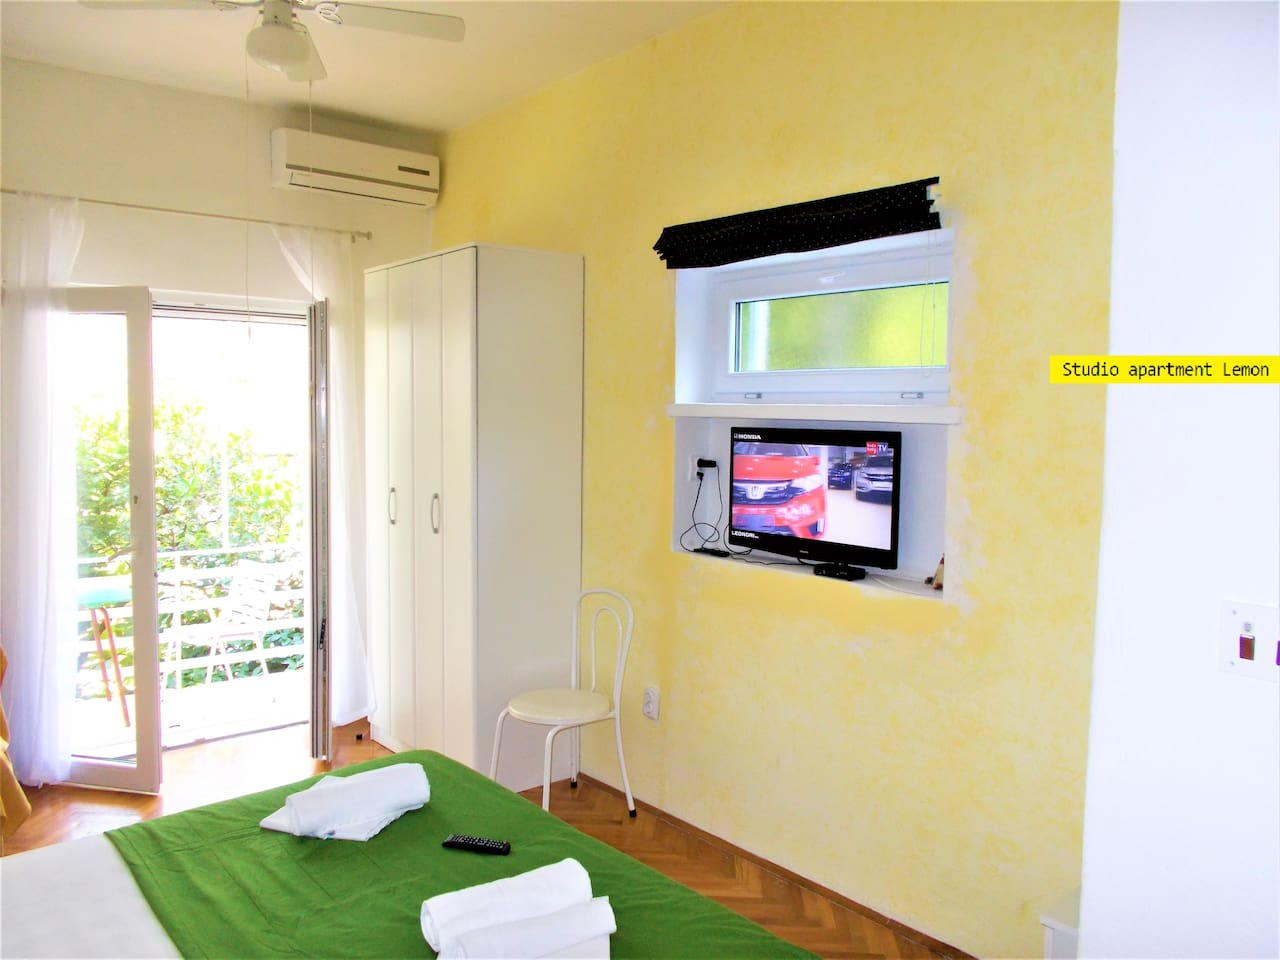 Room with terace. FLAT TV, AIR CONDITION, SEILING FAN..